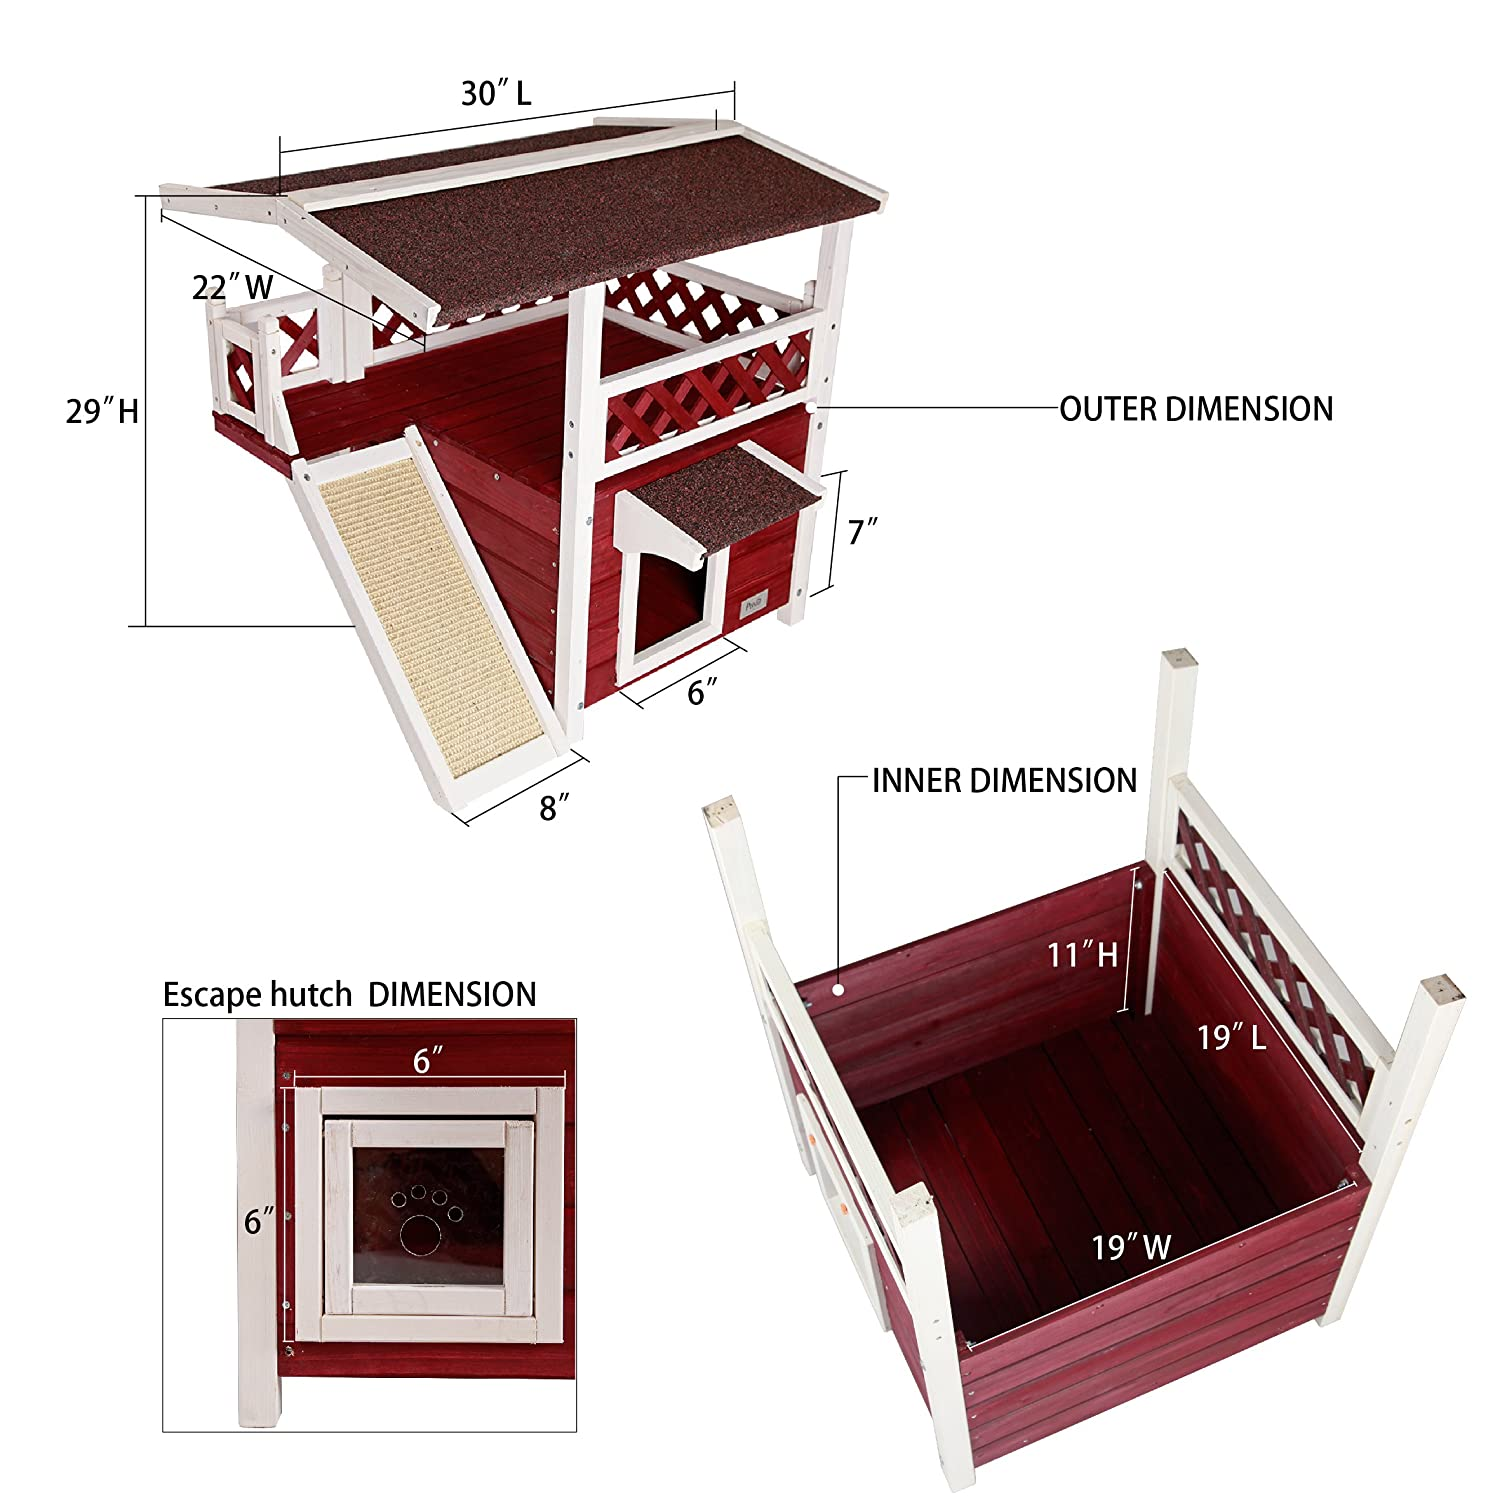 Amazon.com : Petsfit 2-Story Outdoor Weatherproof Cat House/Condo ...